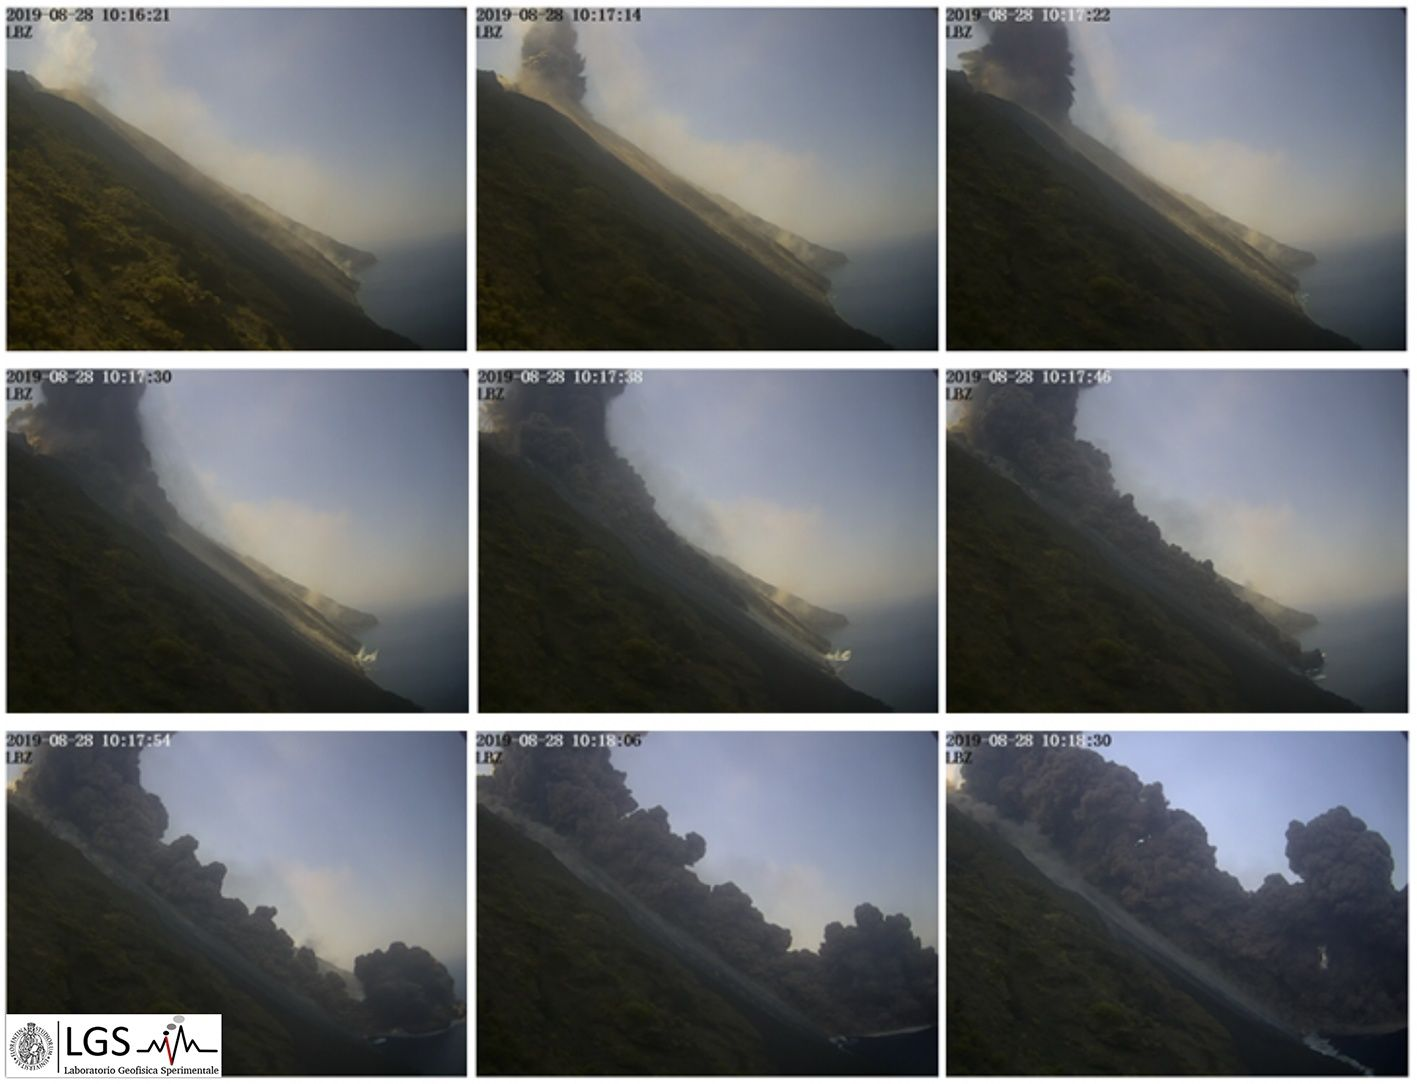 Stromboli - Footage images / time of the pyroclastic flow of 28.08.2019 in the Sciara del Fuoco ds la sciara - Images of the visible camera of Punta Labronzo LBZ - LGS / Laboratorio di Geofisica Sperimentale dell'Università di Firenze - Dipartimento di Scienze della Terra - one click to enlarge